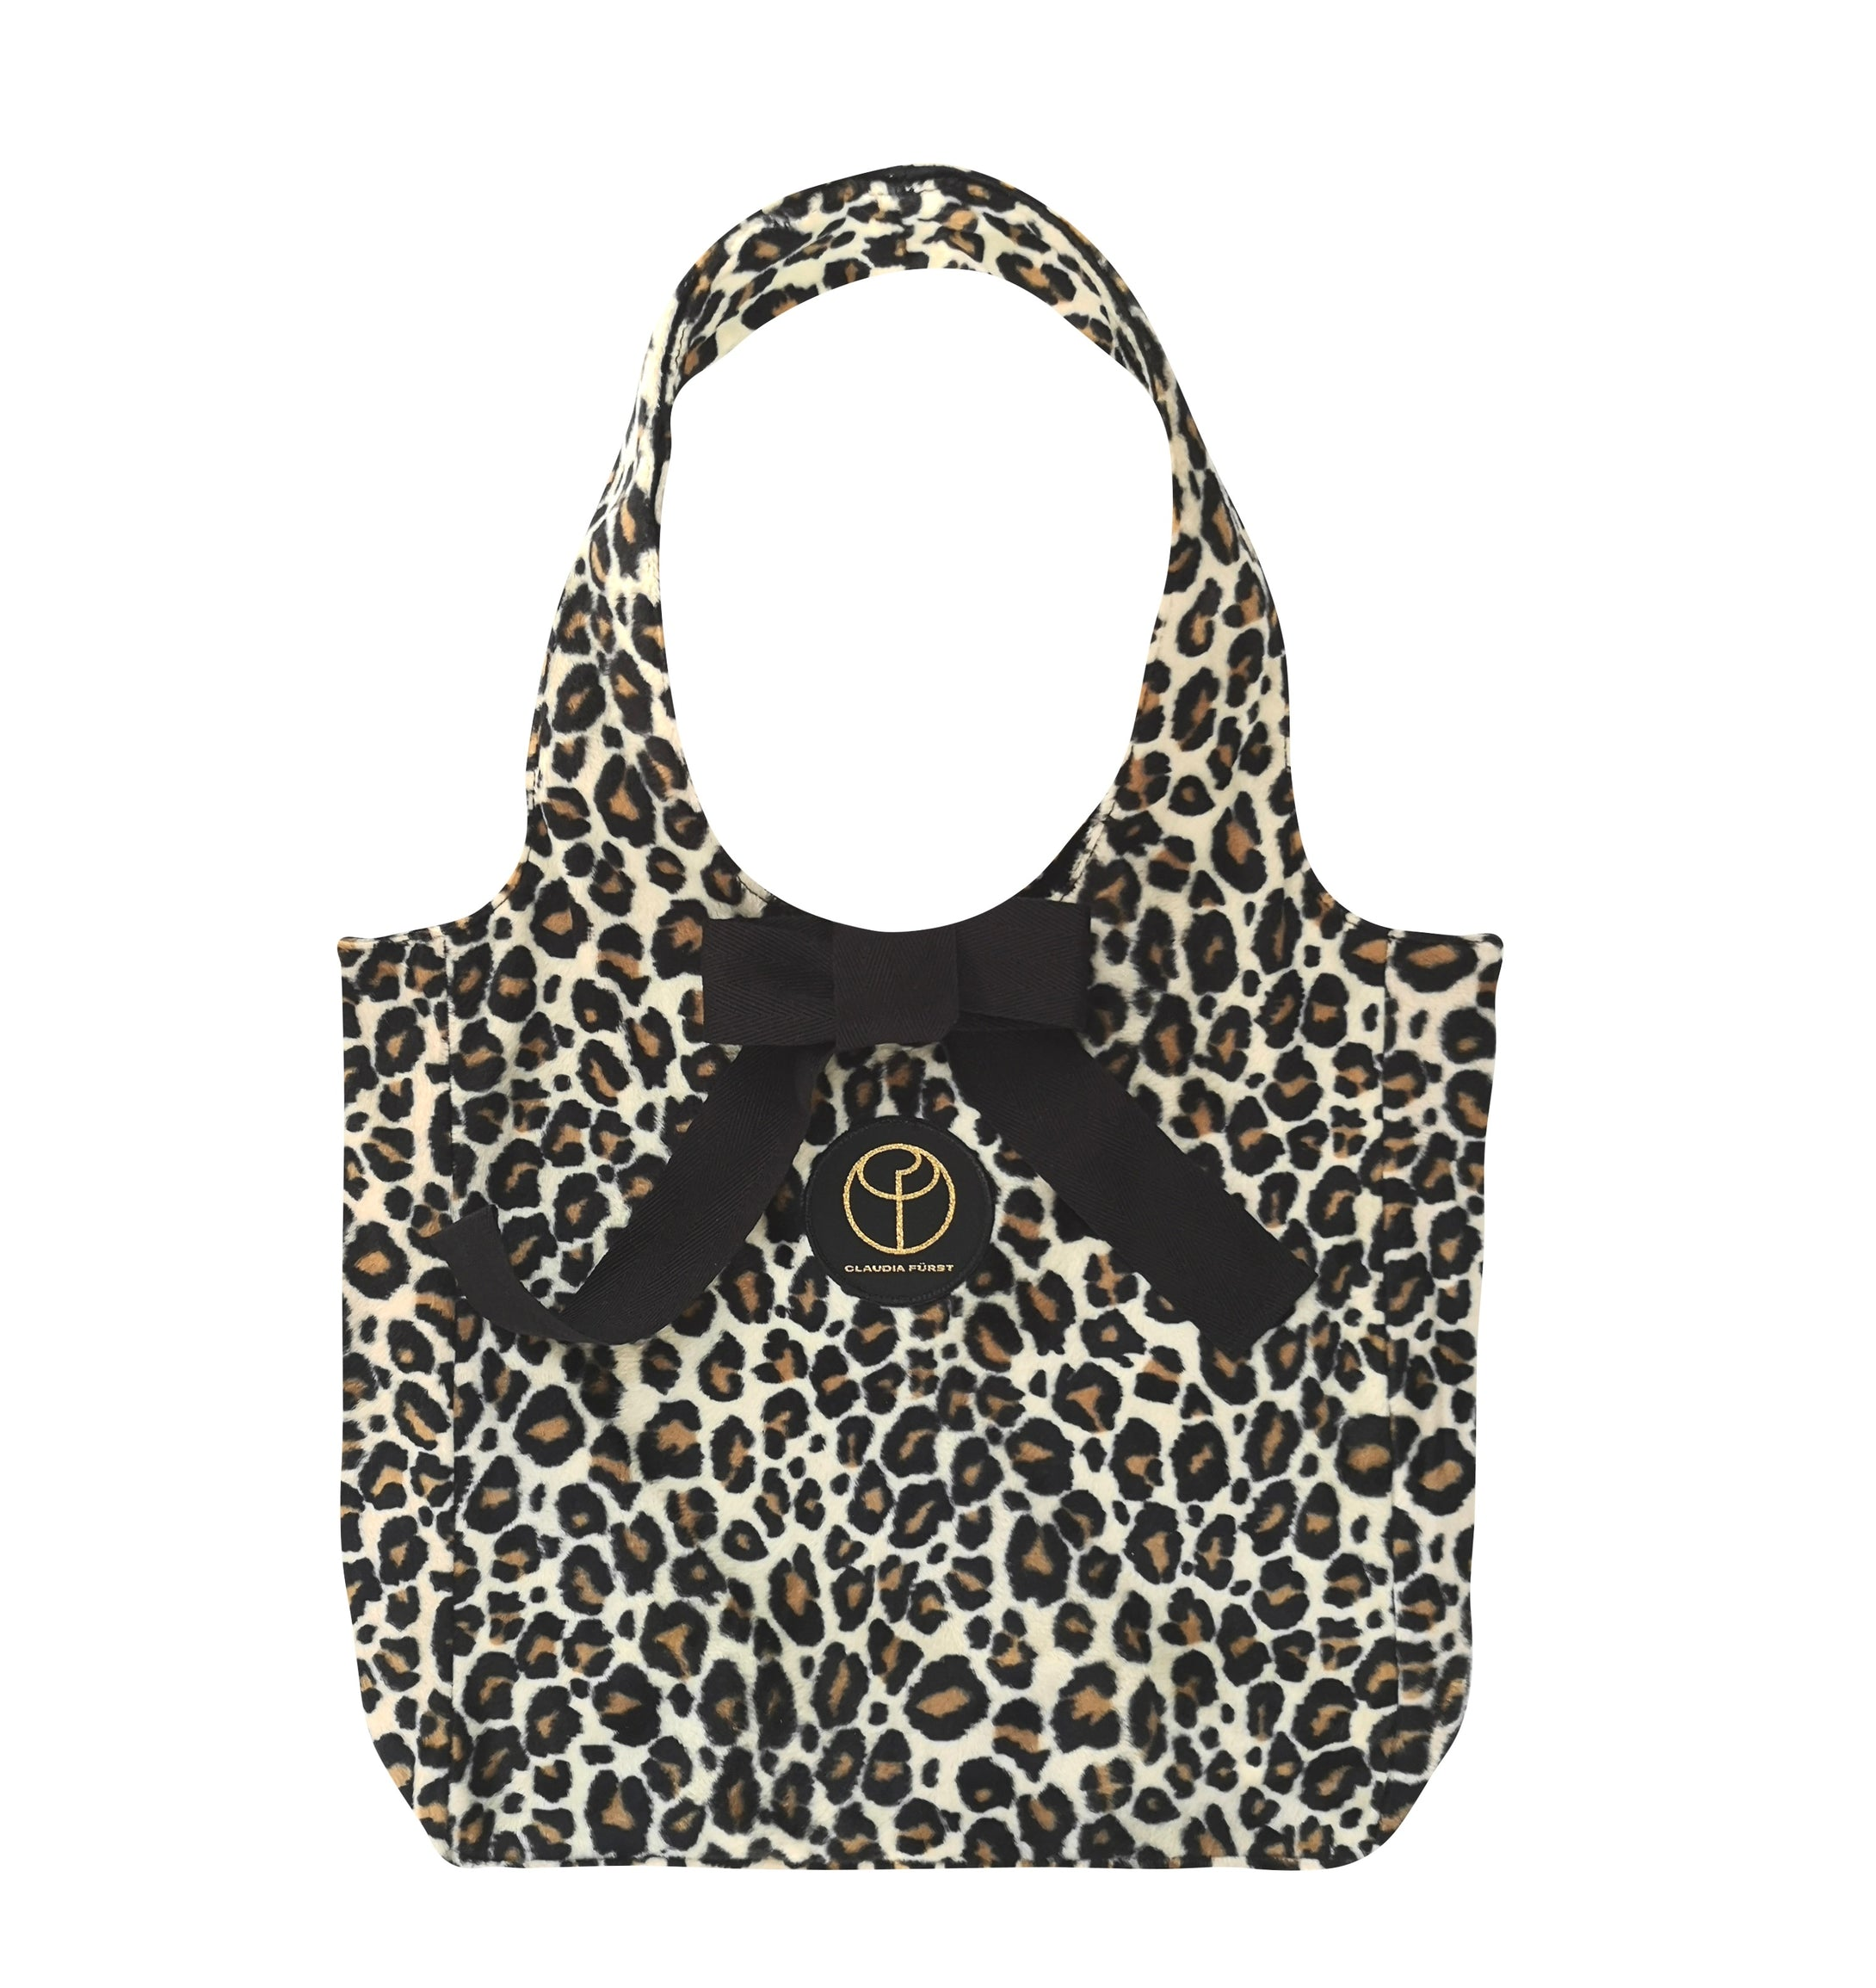 Claudia Fürst • Hobo Bag • Leopard • Small